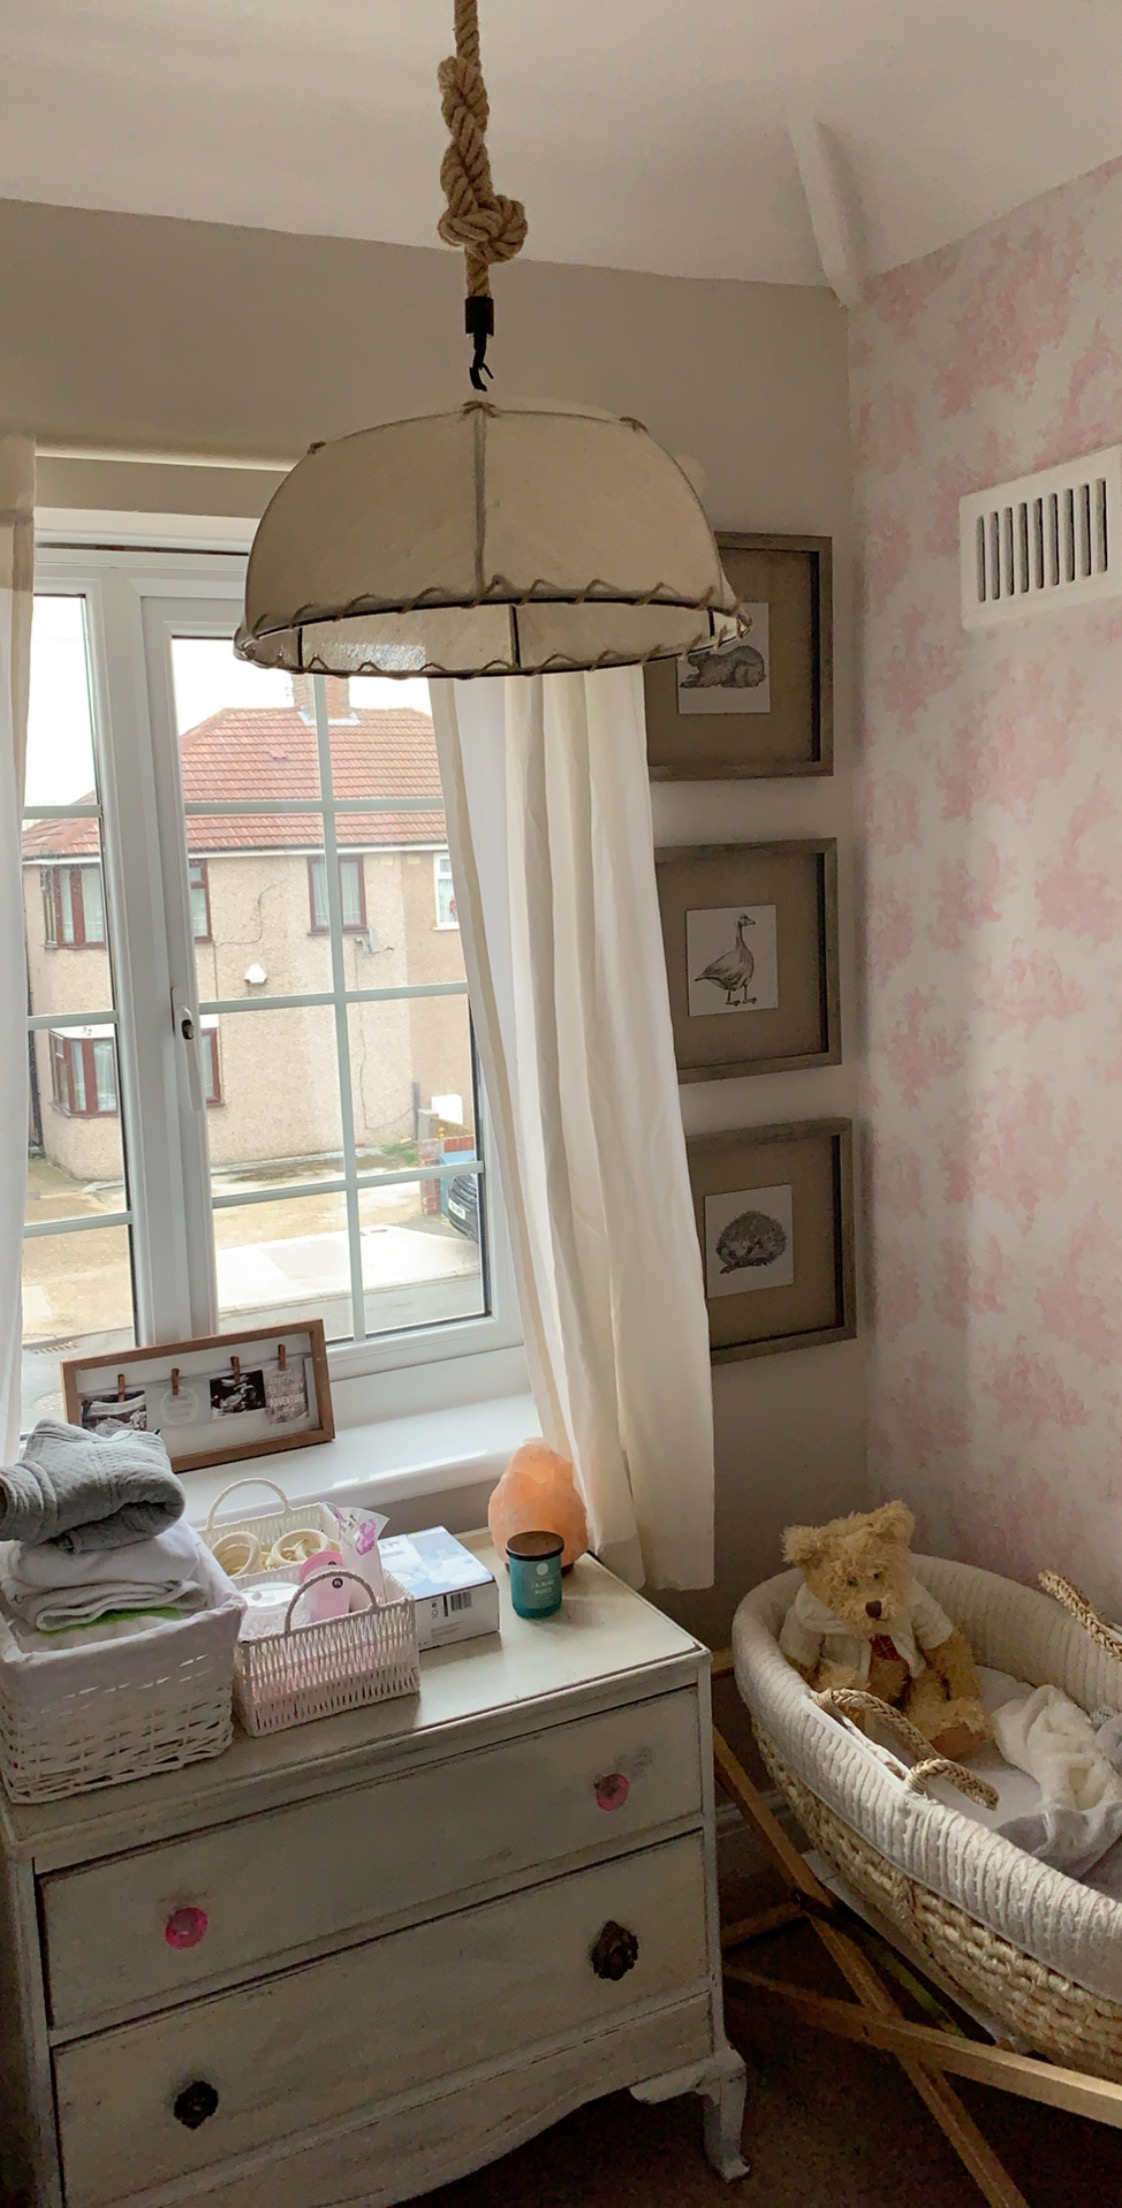 Decoration of Baby Room